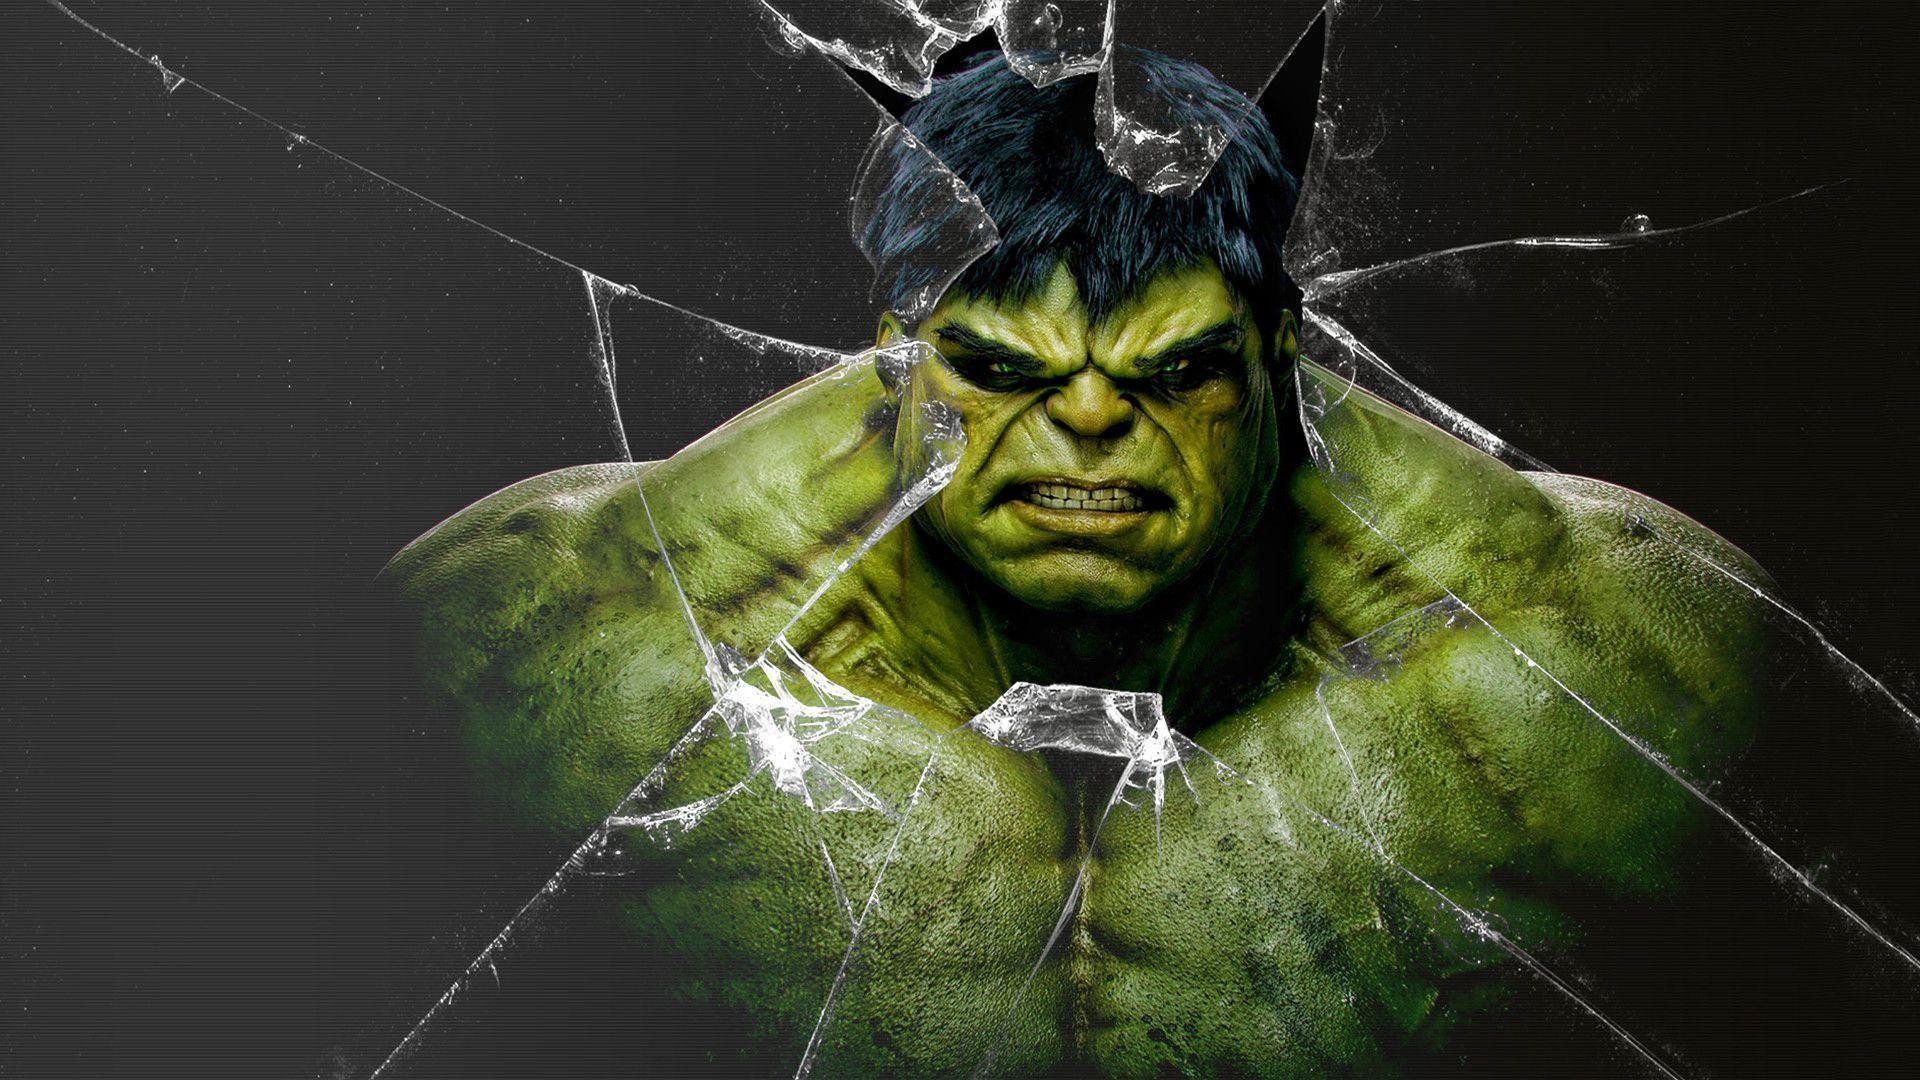 Hulk Wallpapers HD Backgrounds Images Pics Photos Download 1920x1080